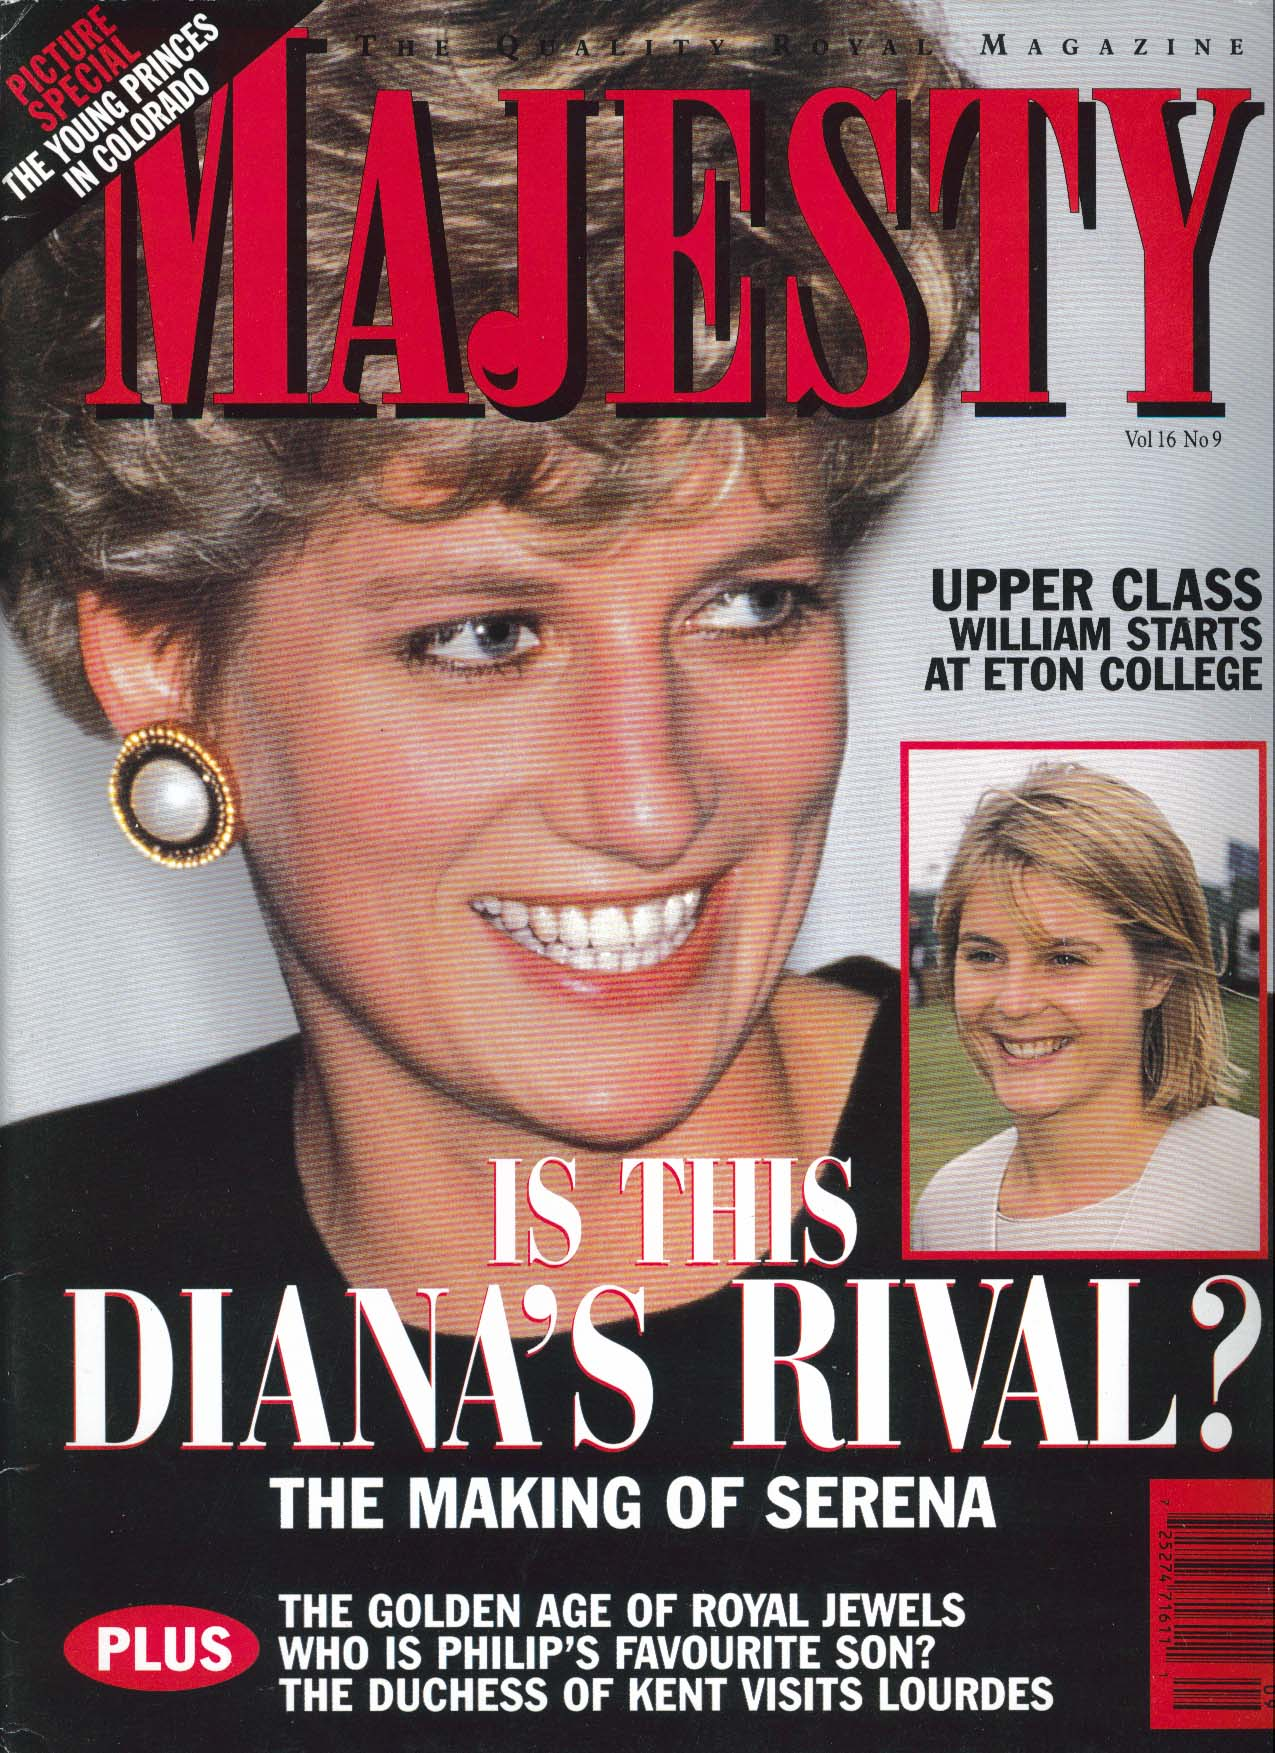 Image for MAJESTY Vol 16 #9 Diana Serena Rivalry Duchess of Kent in Lourdes 9 1995